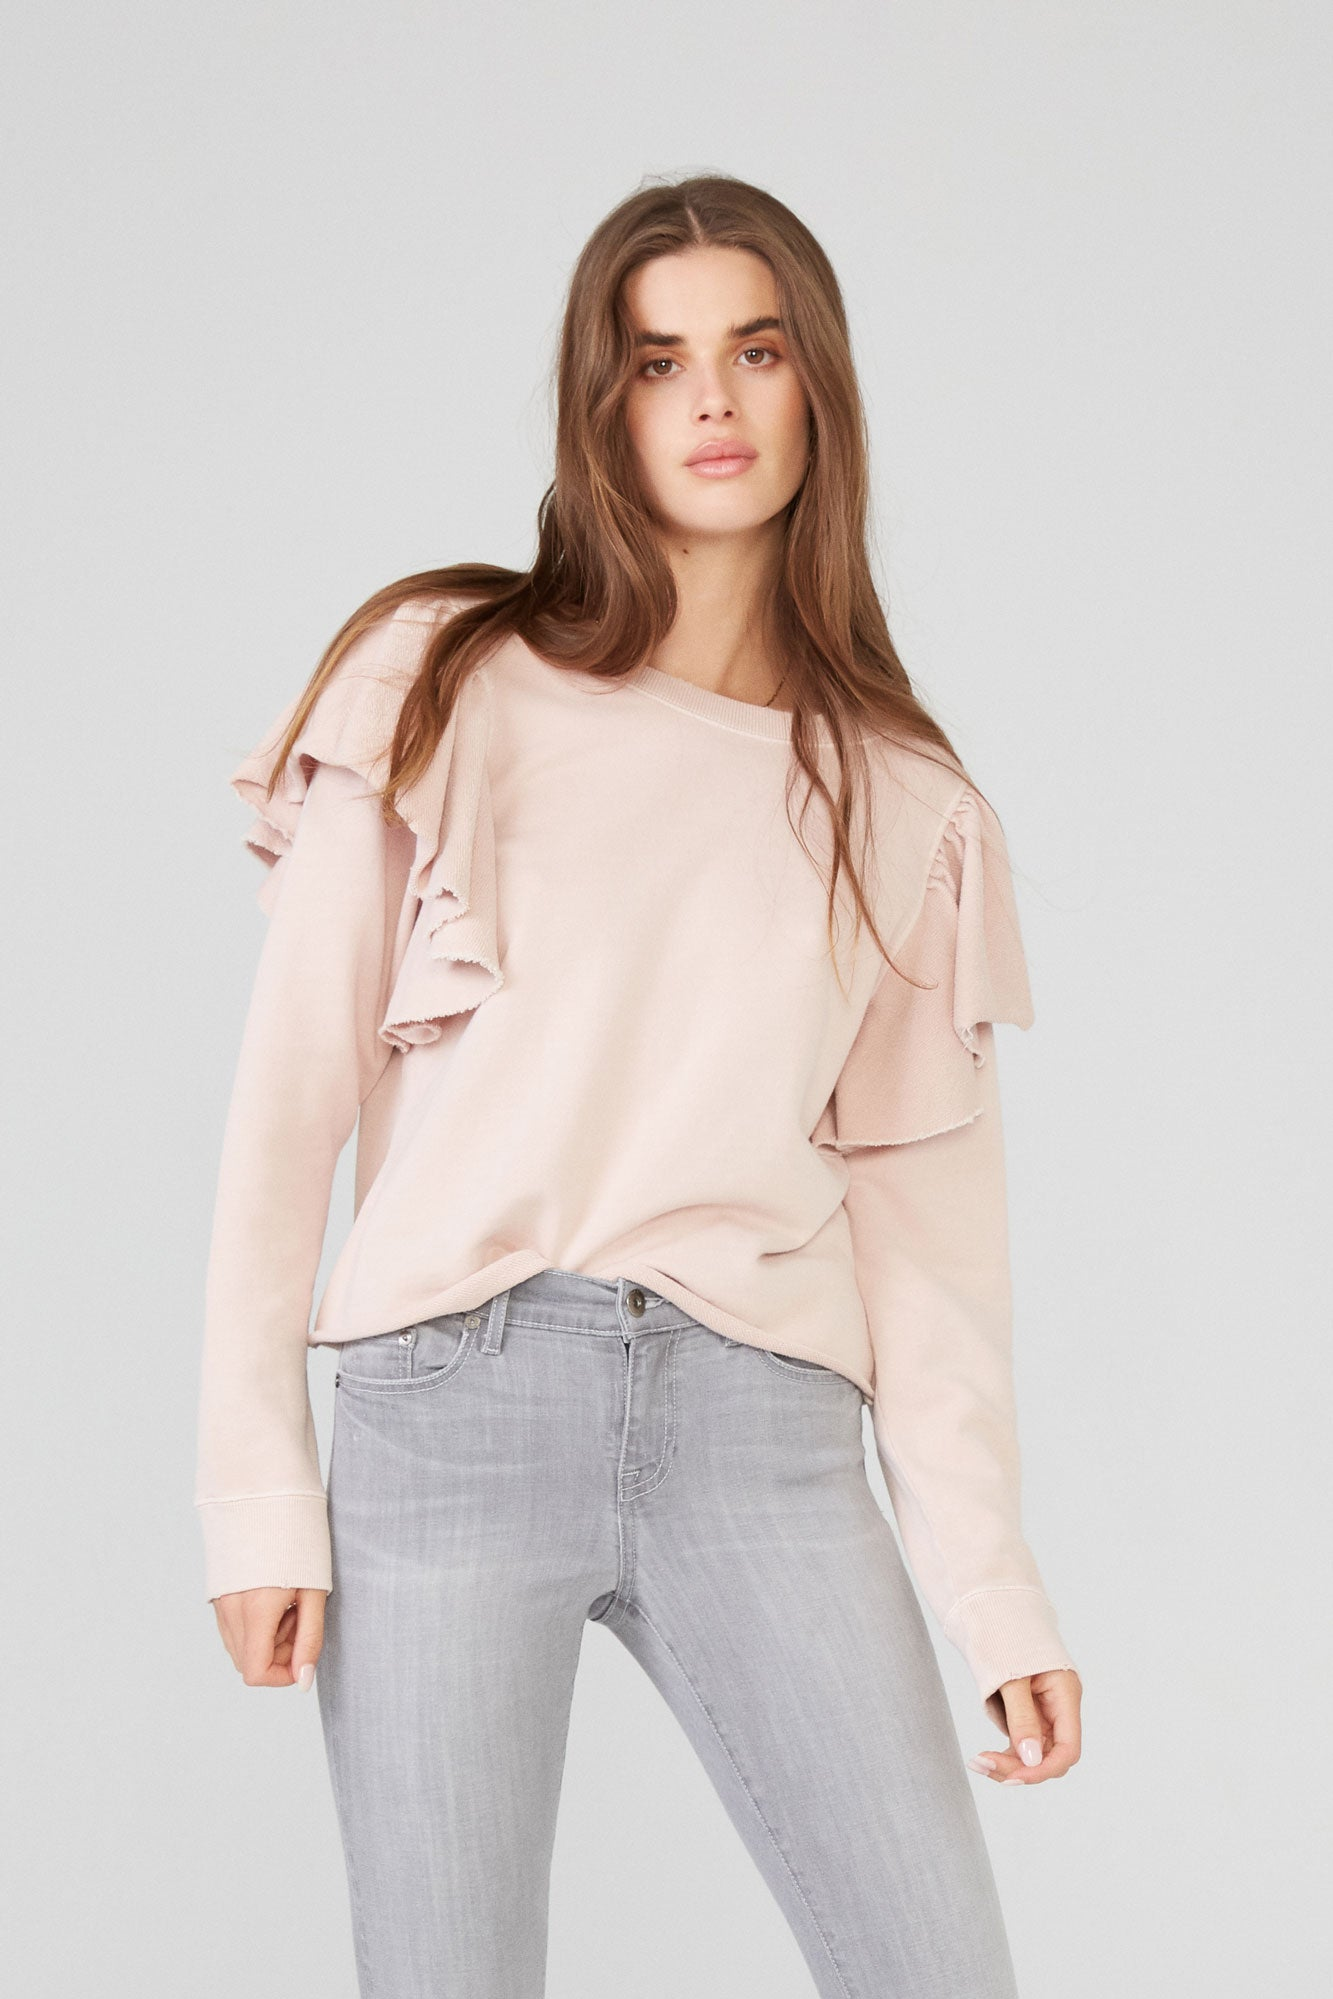 Peyton Long Sleeve Ruffle Sweatshirt - Vintage Rose